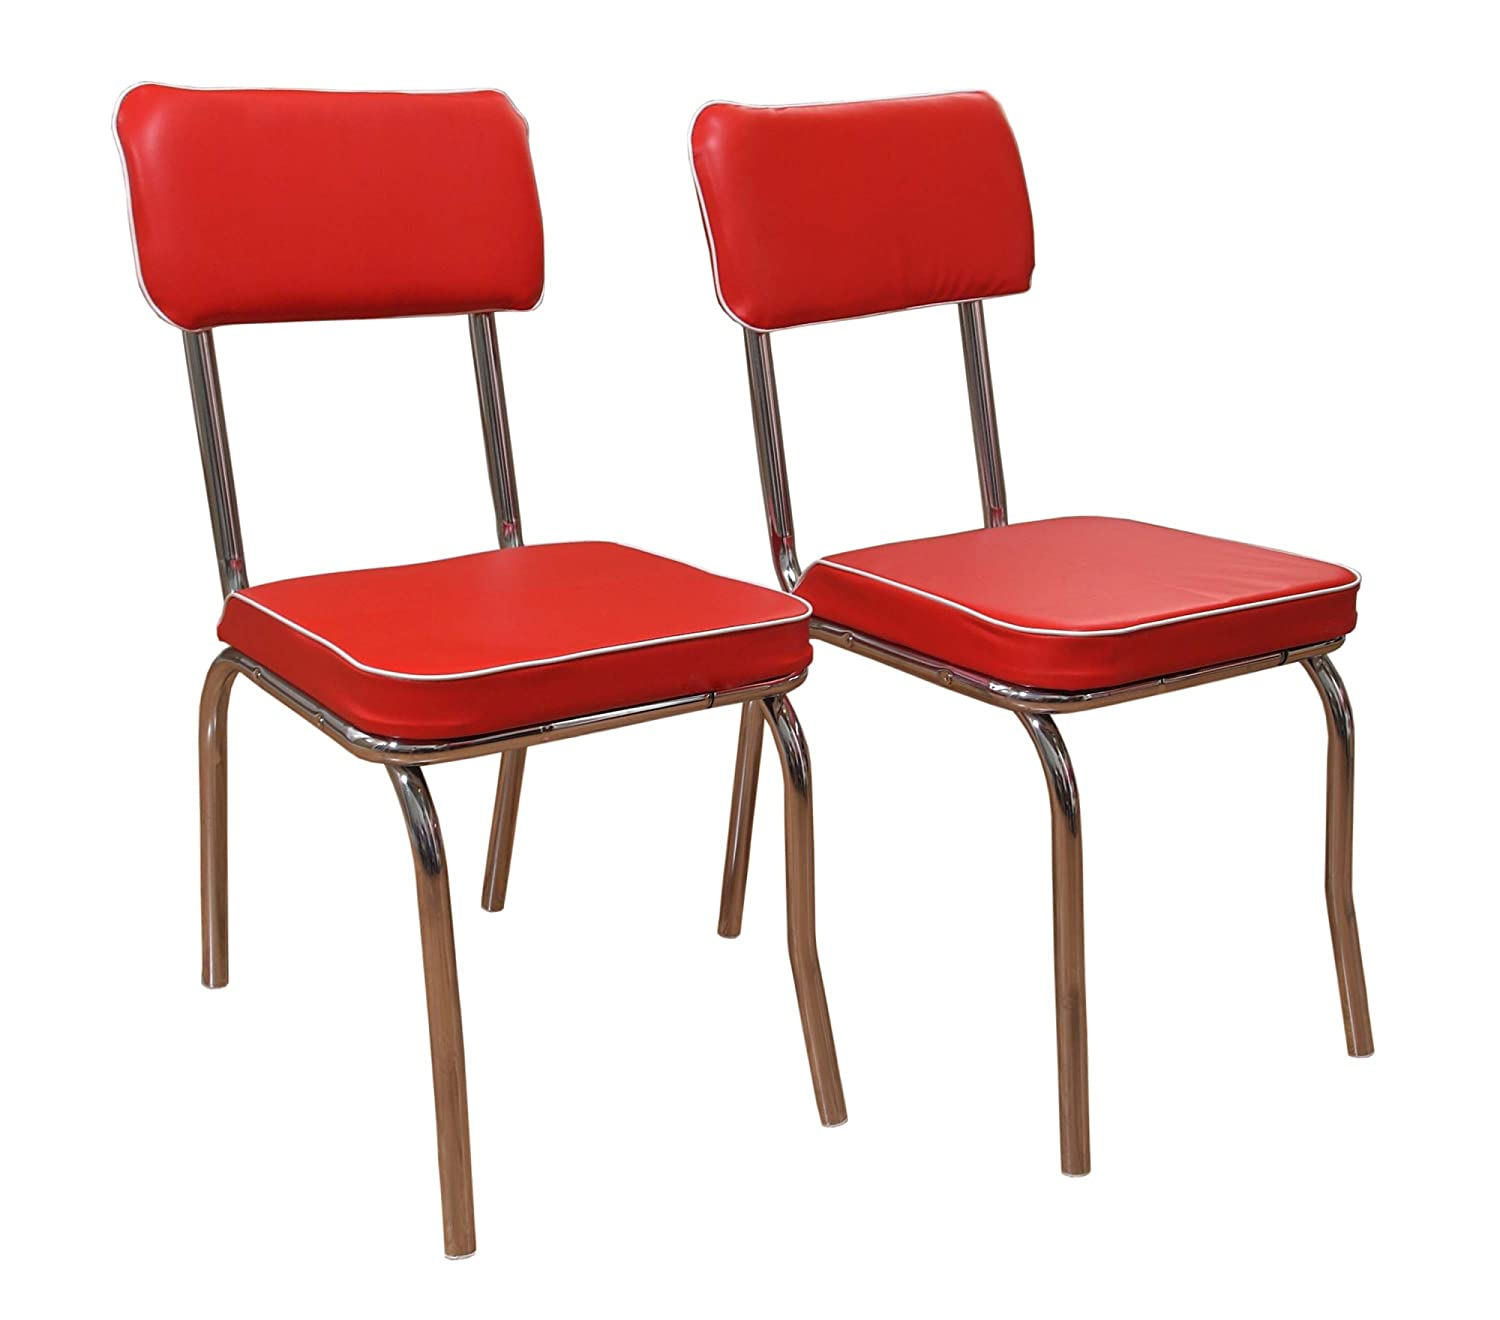 Amazon.com: Target Marketing Systems Set Of 2 Retro Upholstered Vinyl Dining  Chairs With Chrome Accents, Red: Kitchen U0026 Dining